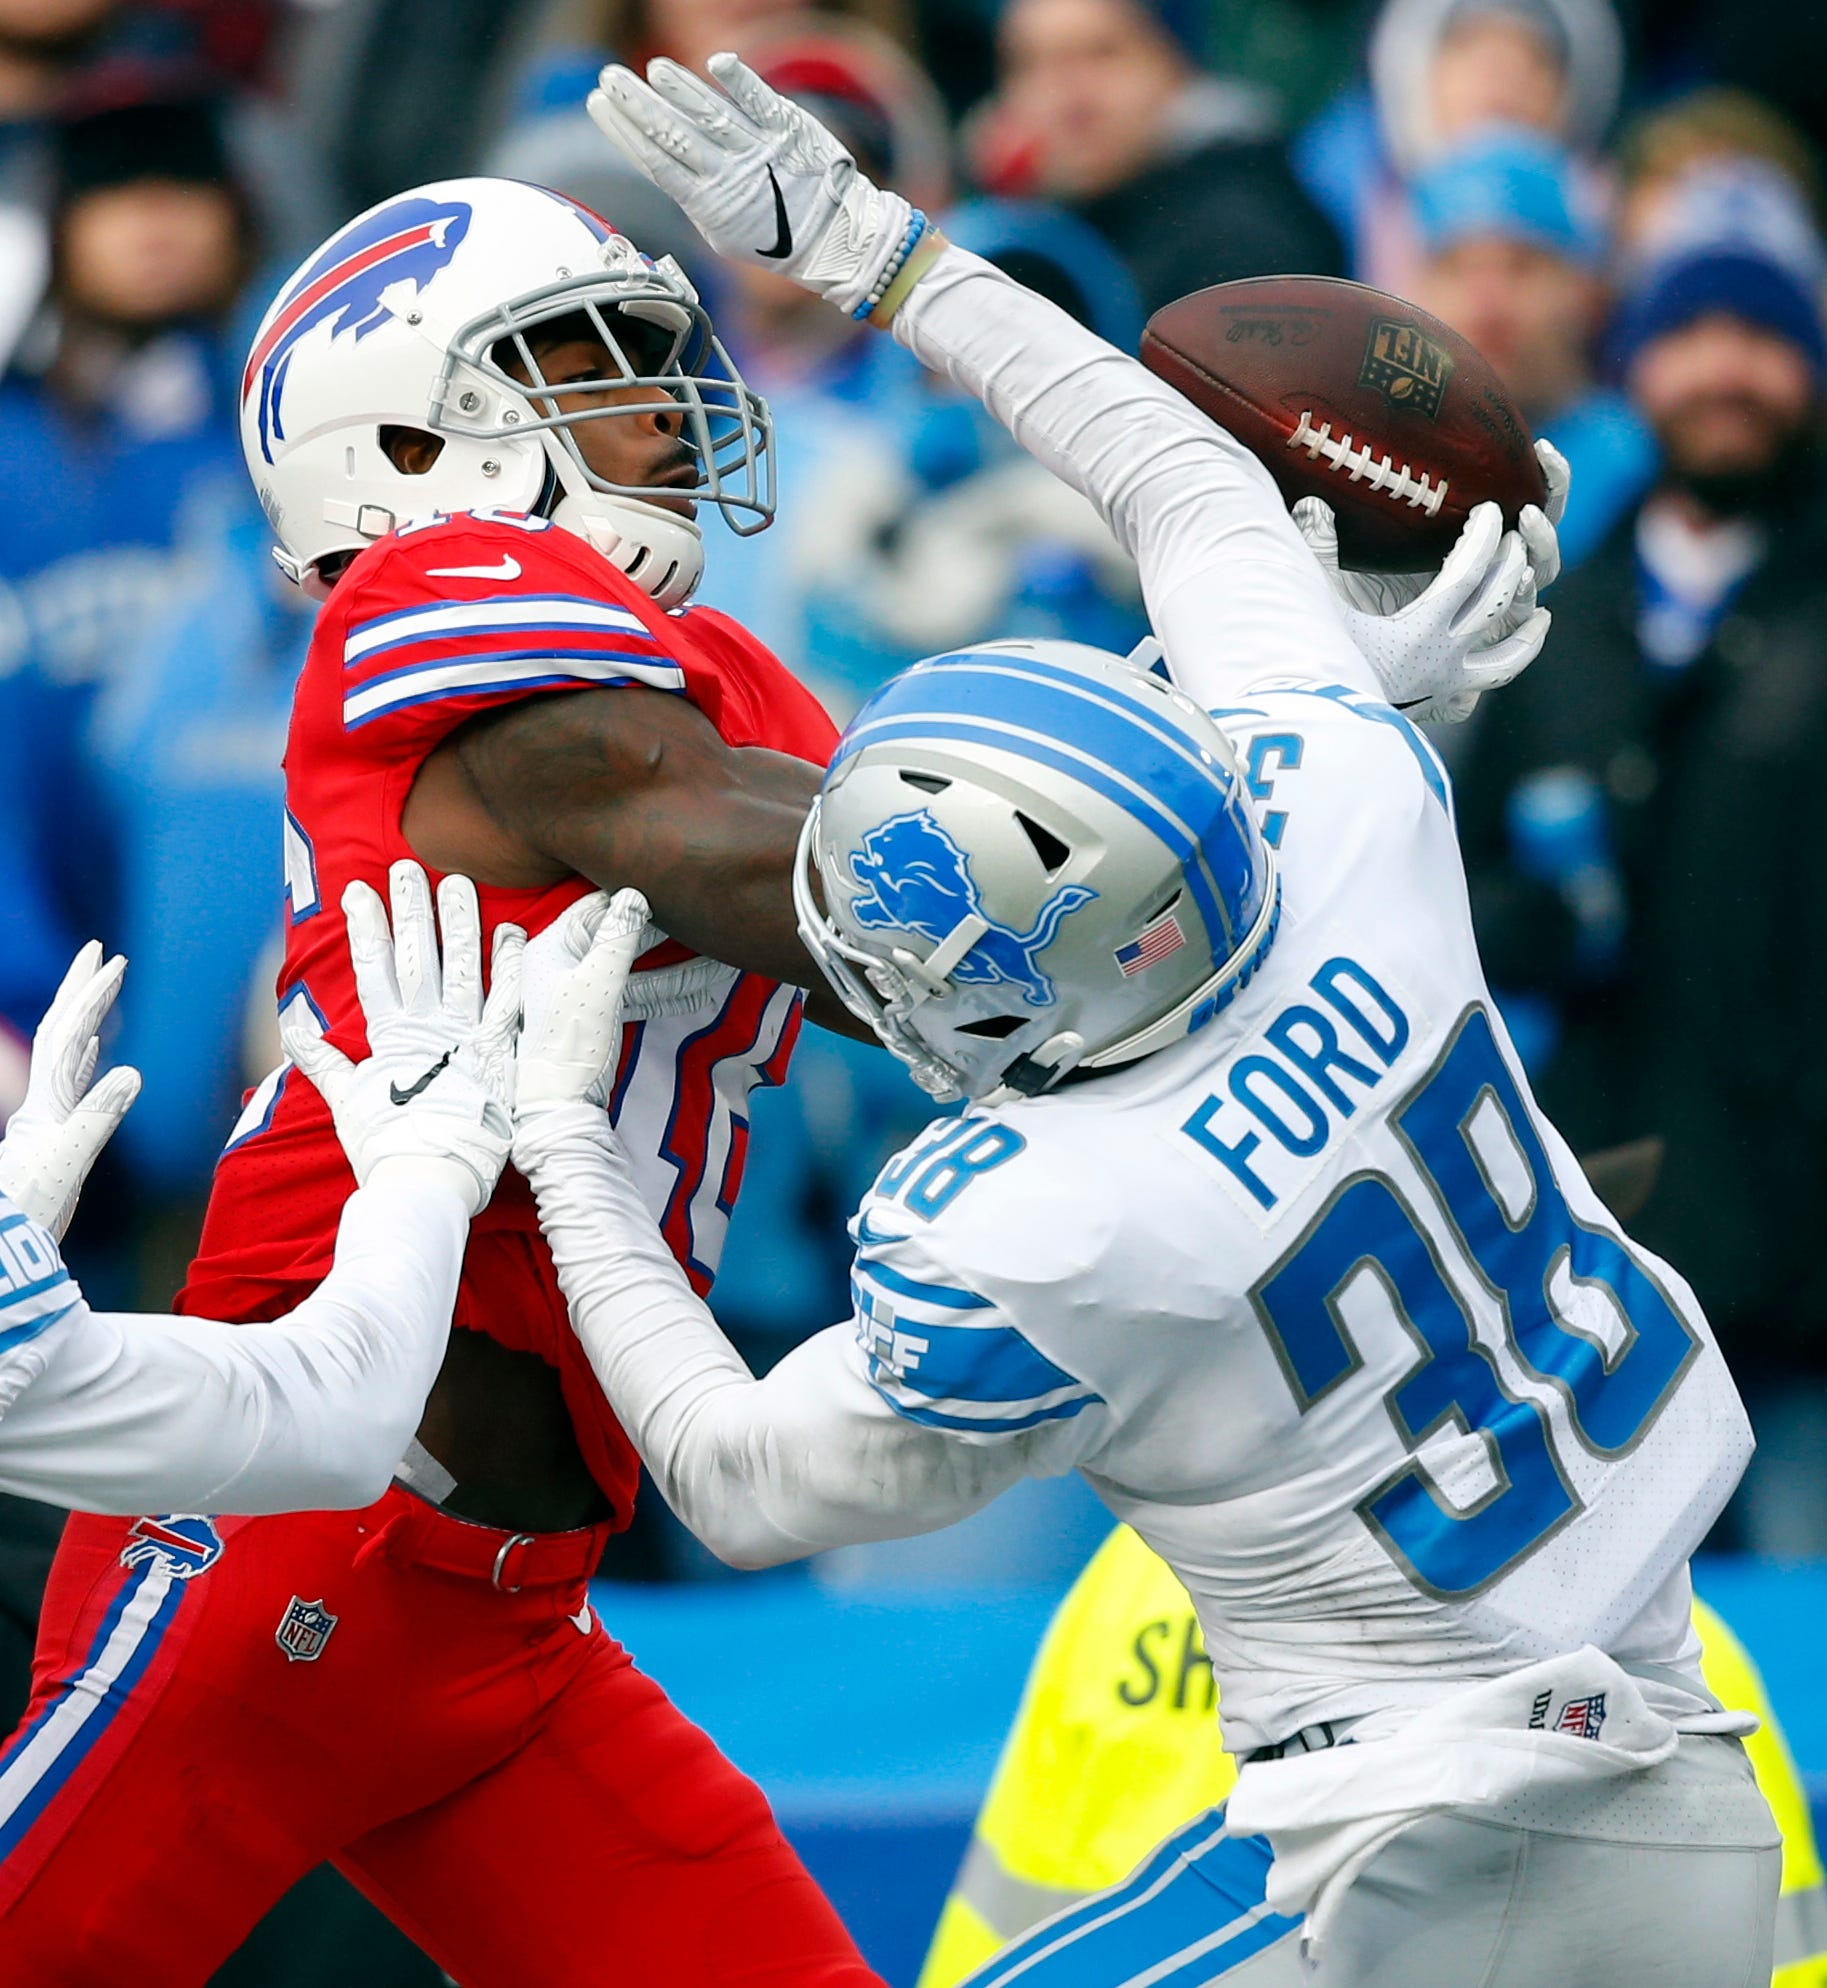 Bills receiver Robert Foster catches a pass under pressure from Lions cornerback Mike Ford during the first half.